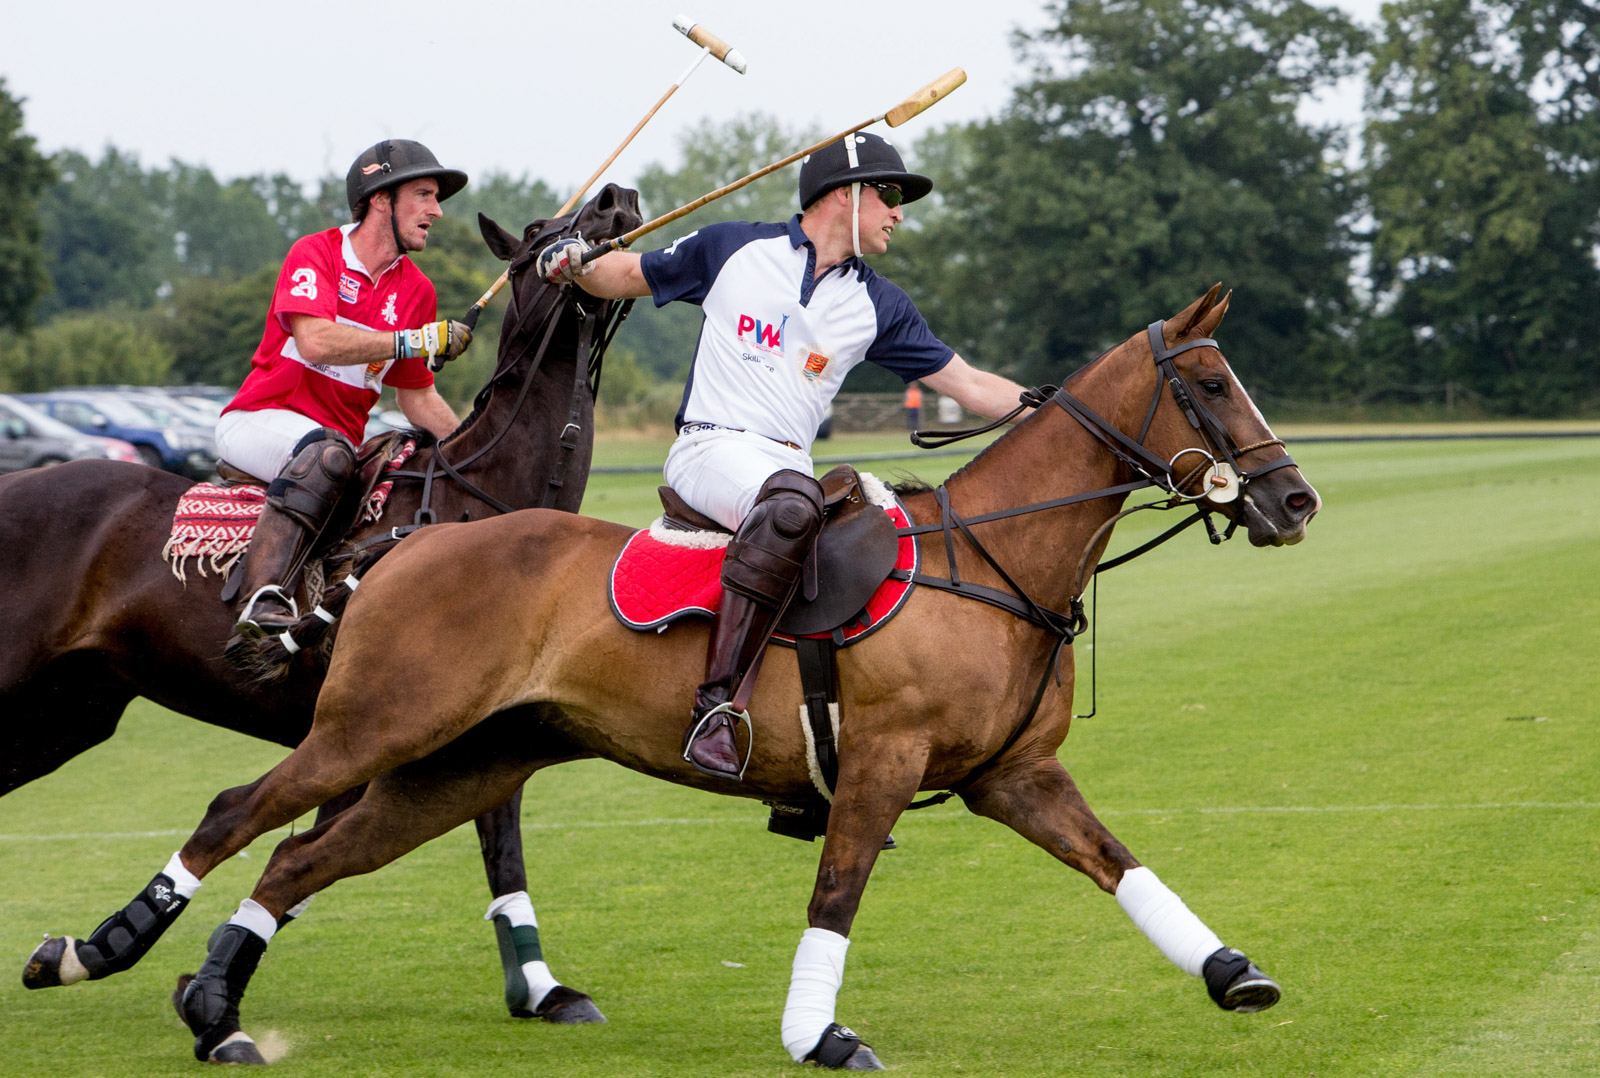 Norfolk Charity Polo Match